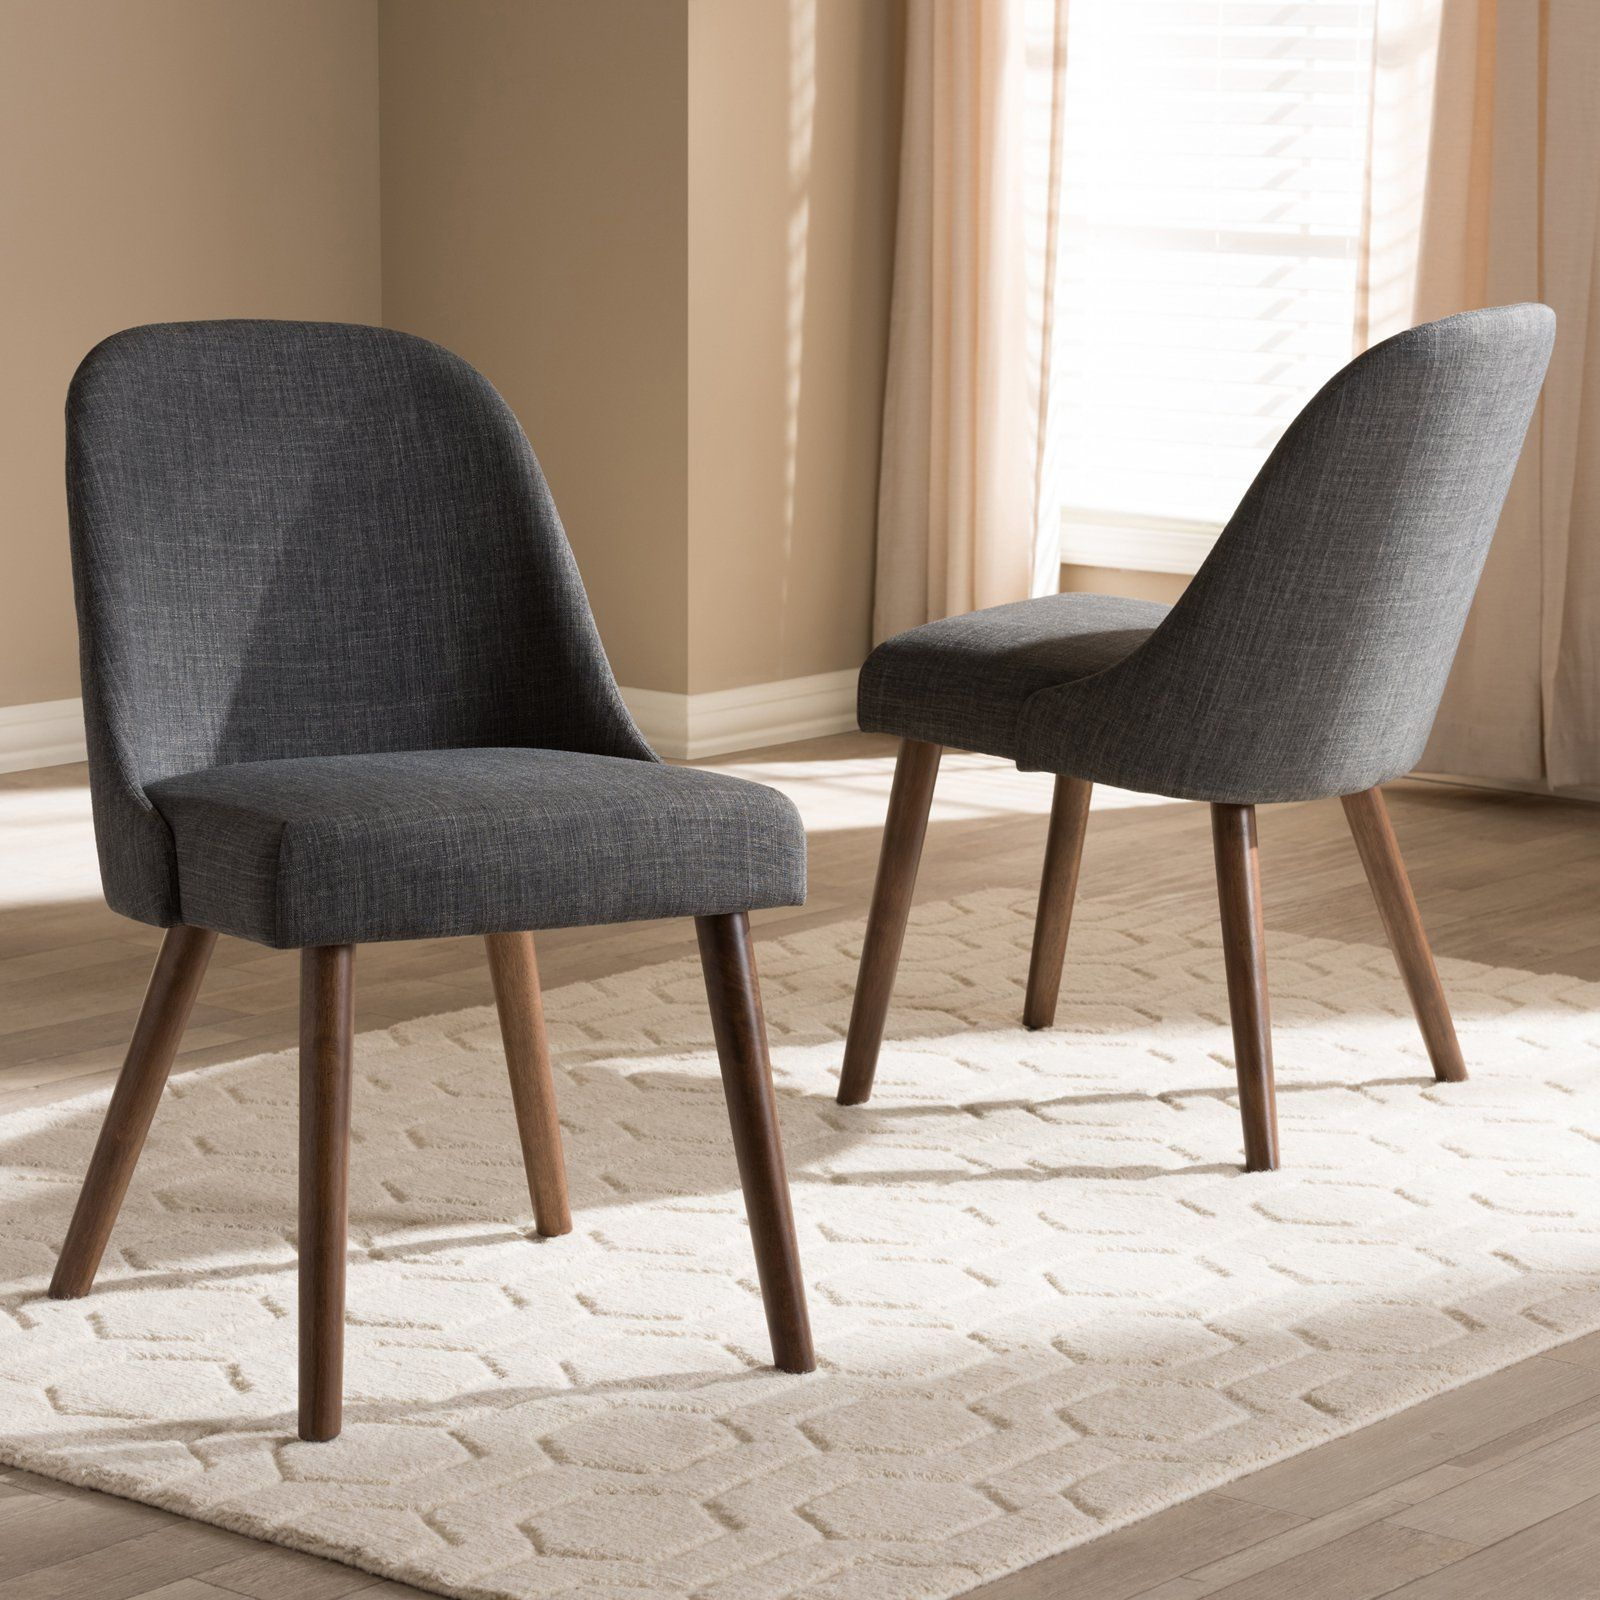 Baxton Studio Cody Mid Century Modern Fabric Upholstered With Carlton Wood Leg Upholstered Dining Chairs (View 9 of 15)